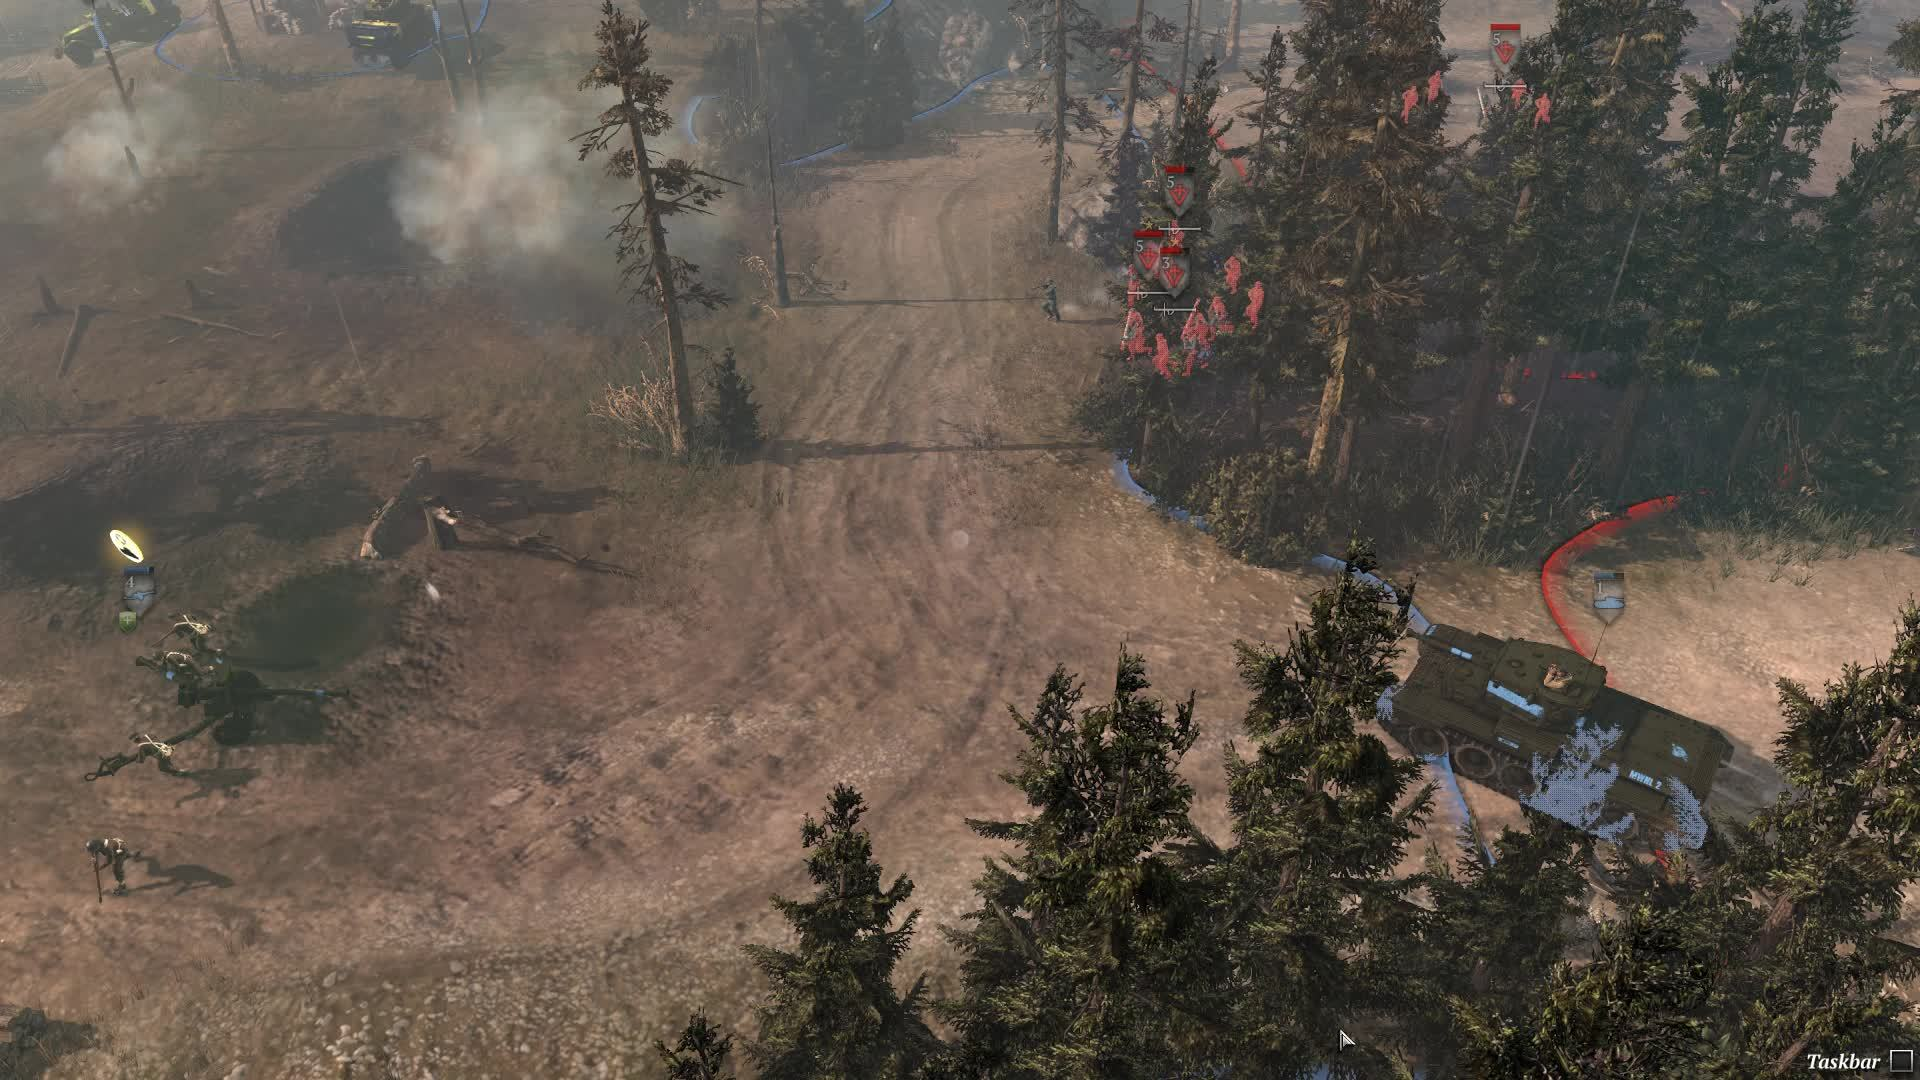 companyofheroes, Crushing through the forest GIFs